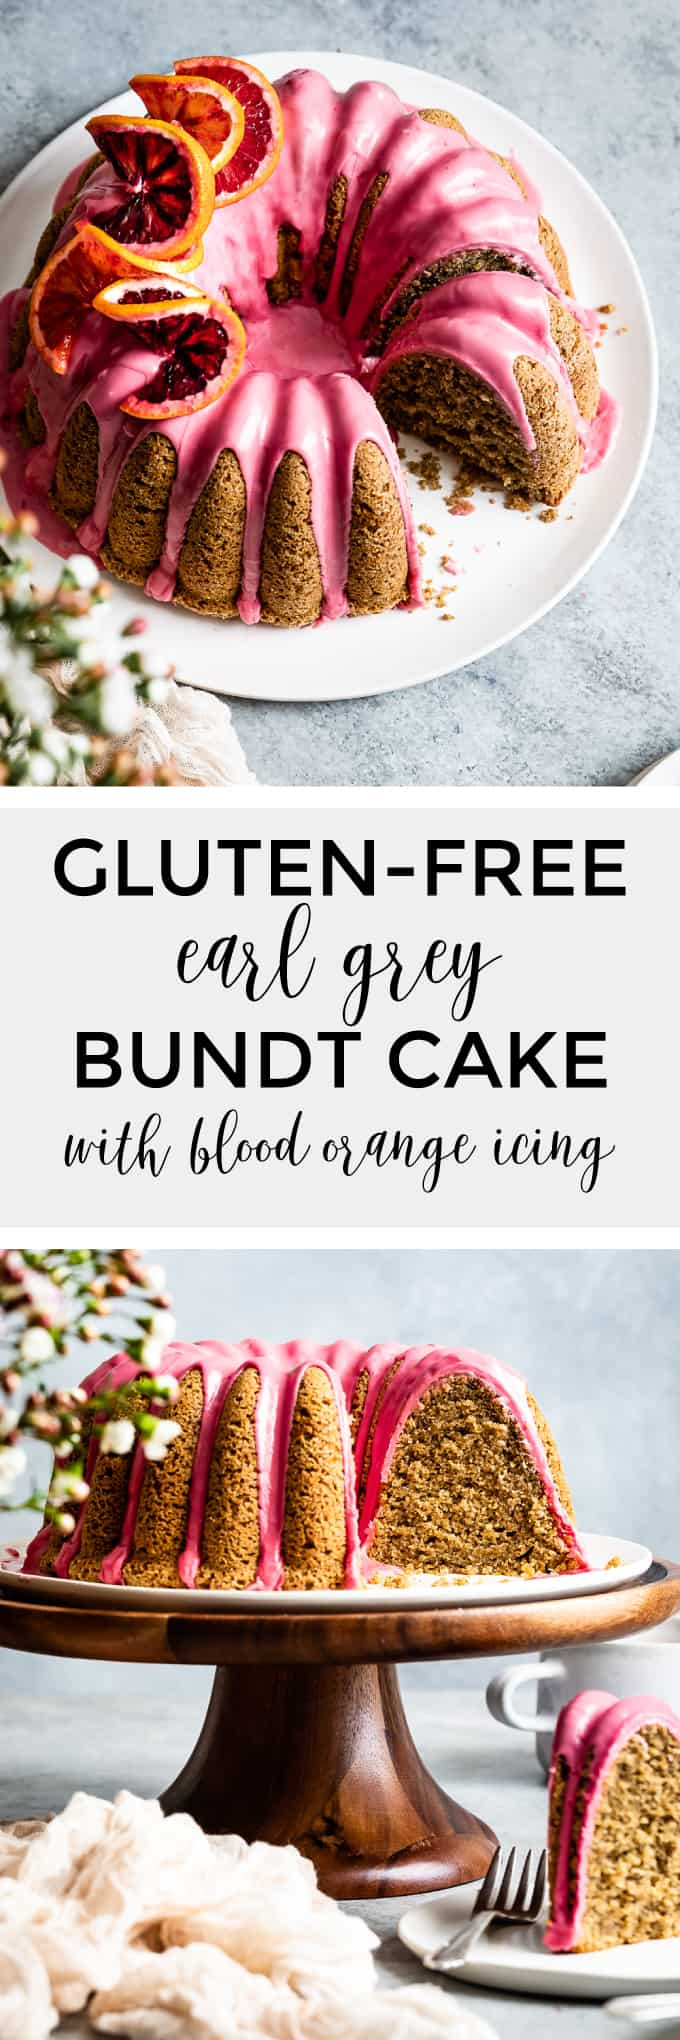 Gluten-Free Earl Grey Cake Recipe with Blood Orange Icing